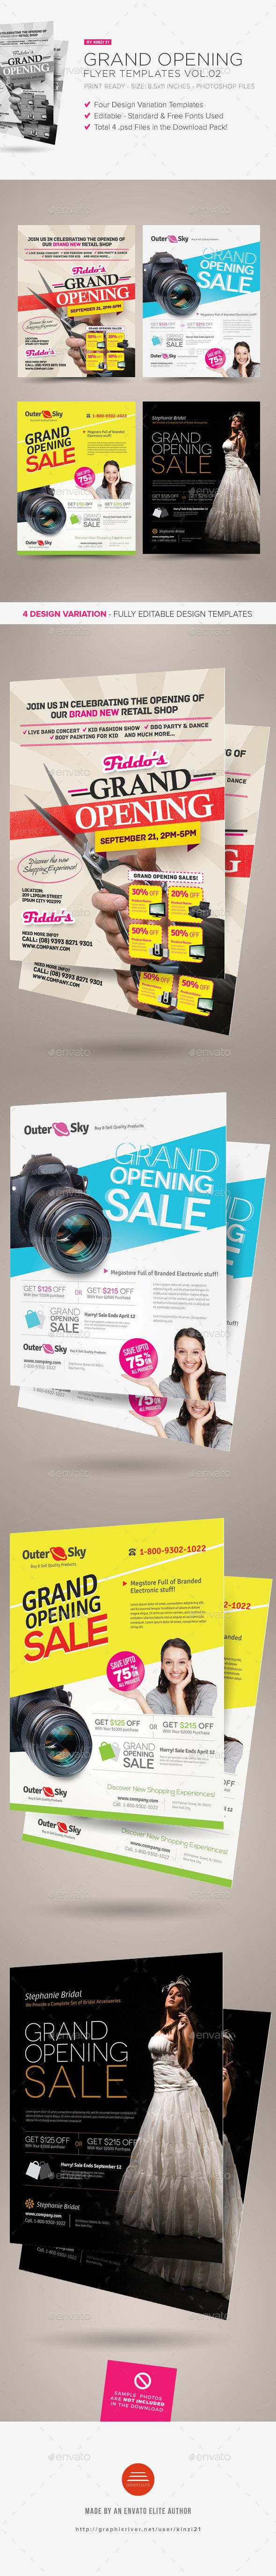 10 best grand opening flyer images on pinterest flyer design grand opening flyers vol02 saigontimesfo